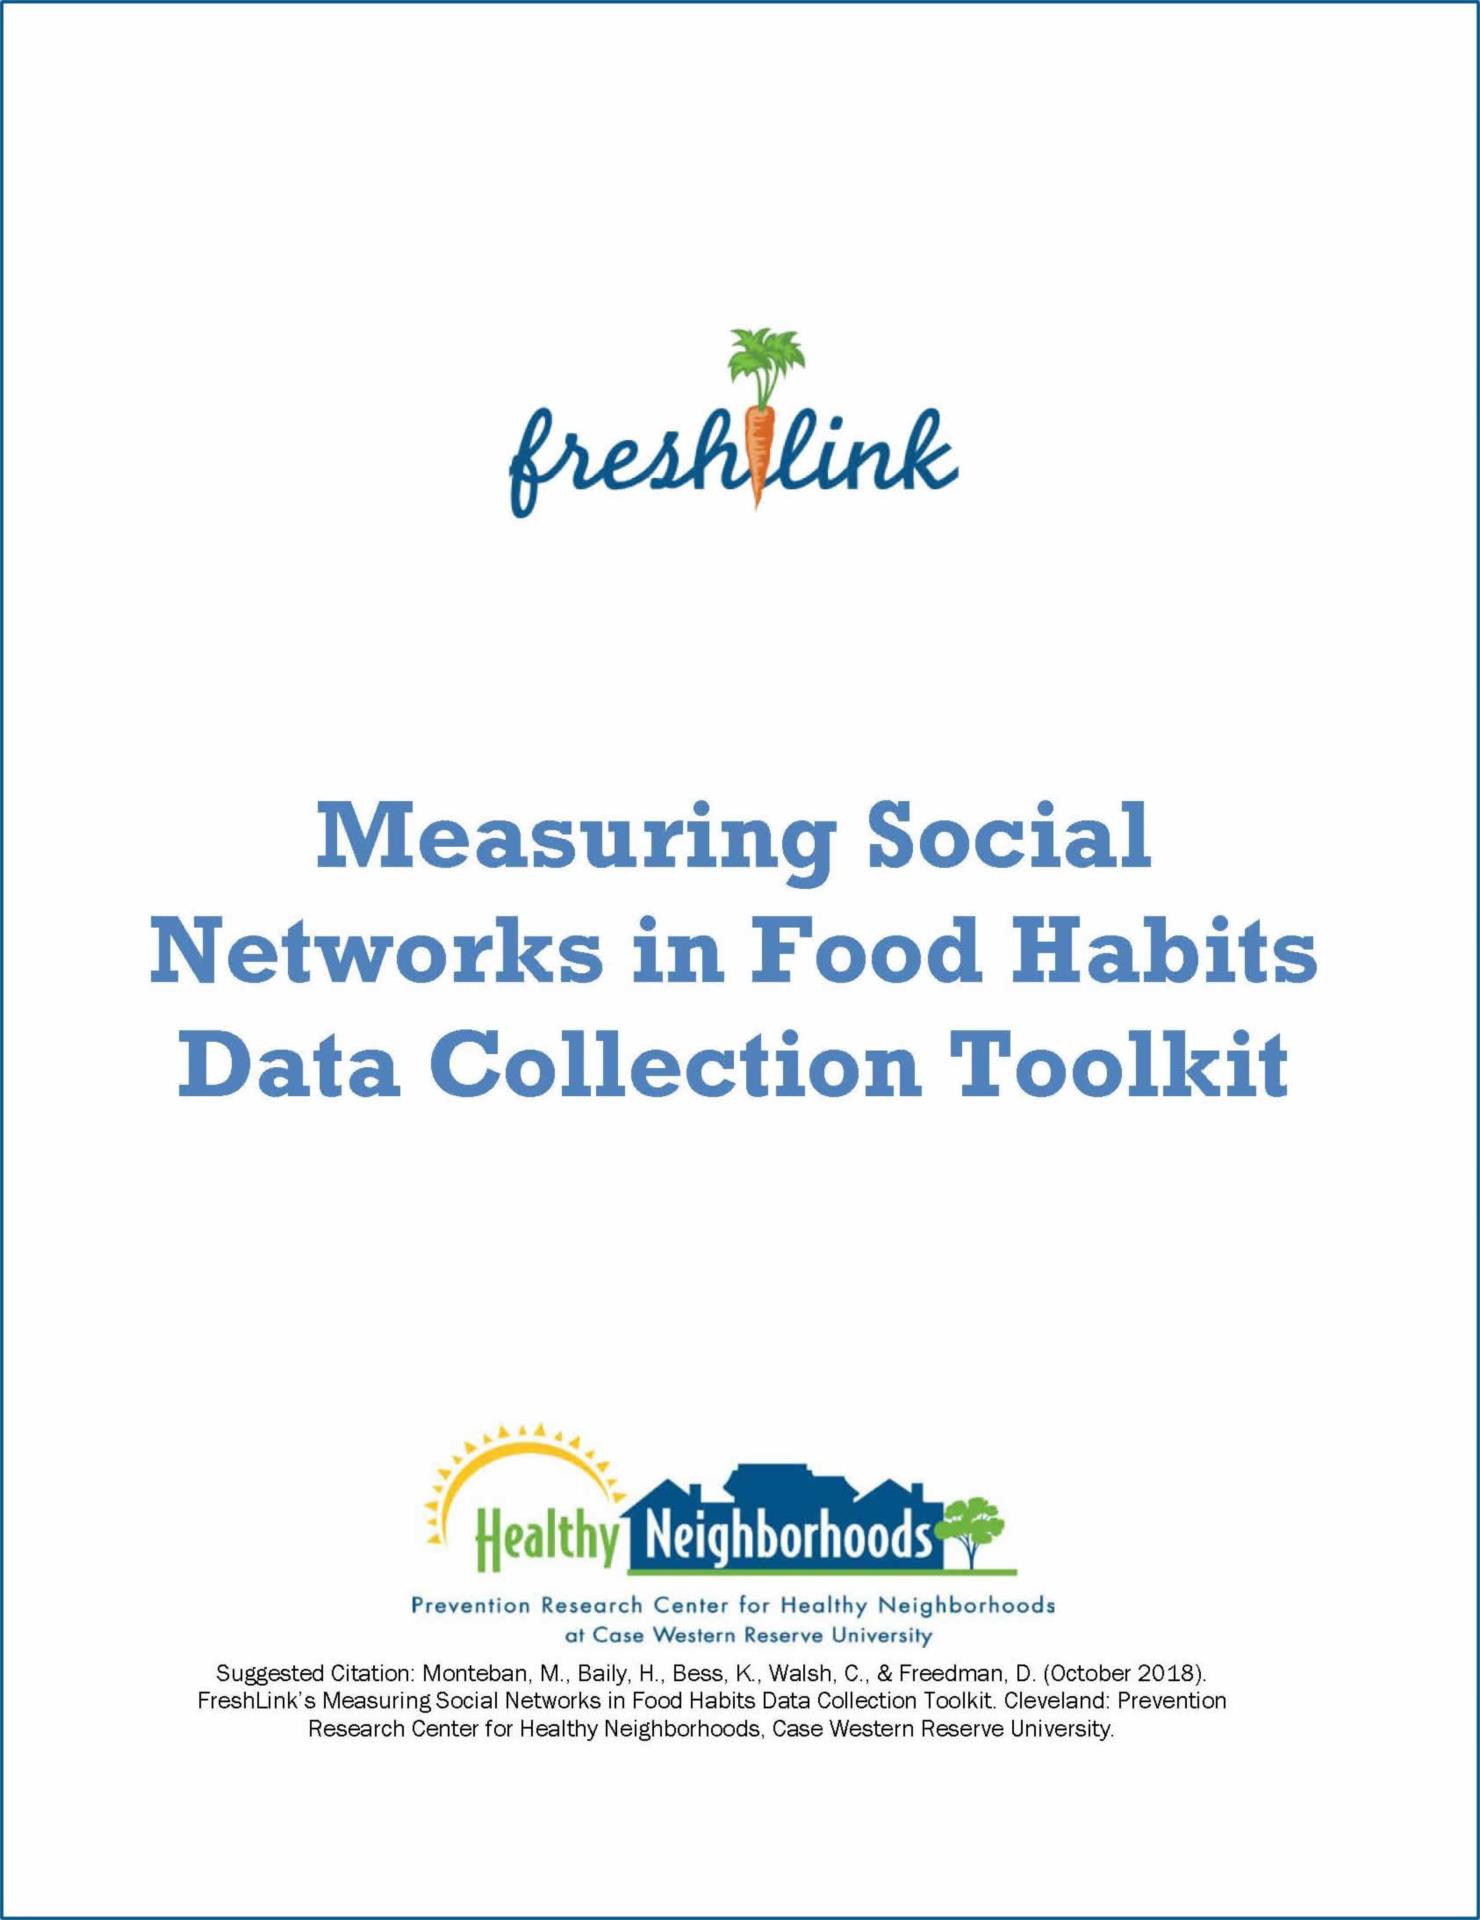 FreshLink Social Networks Toolkit image